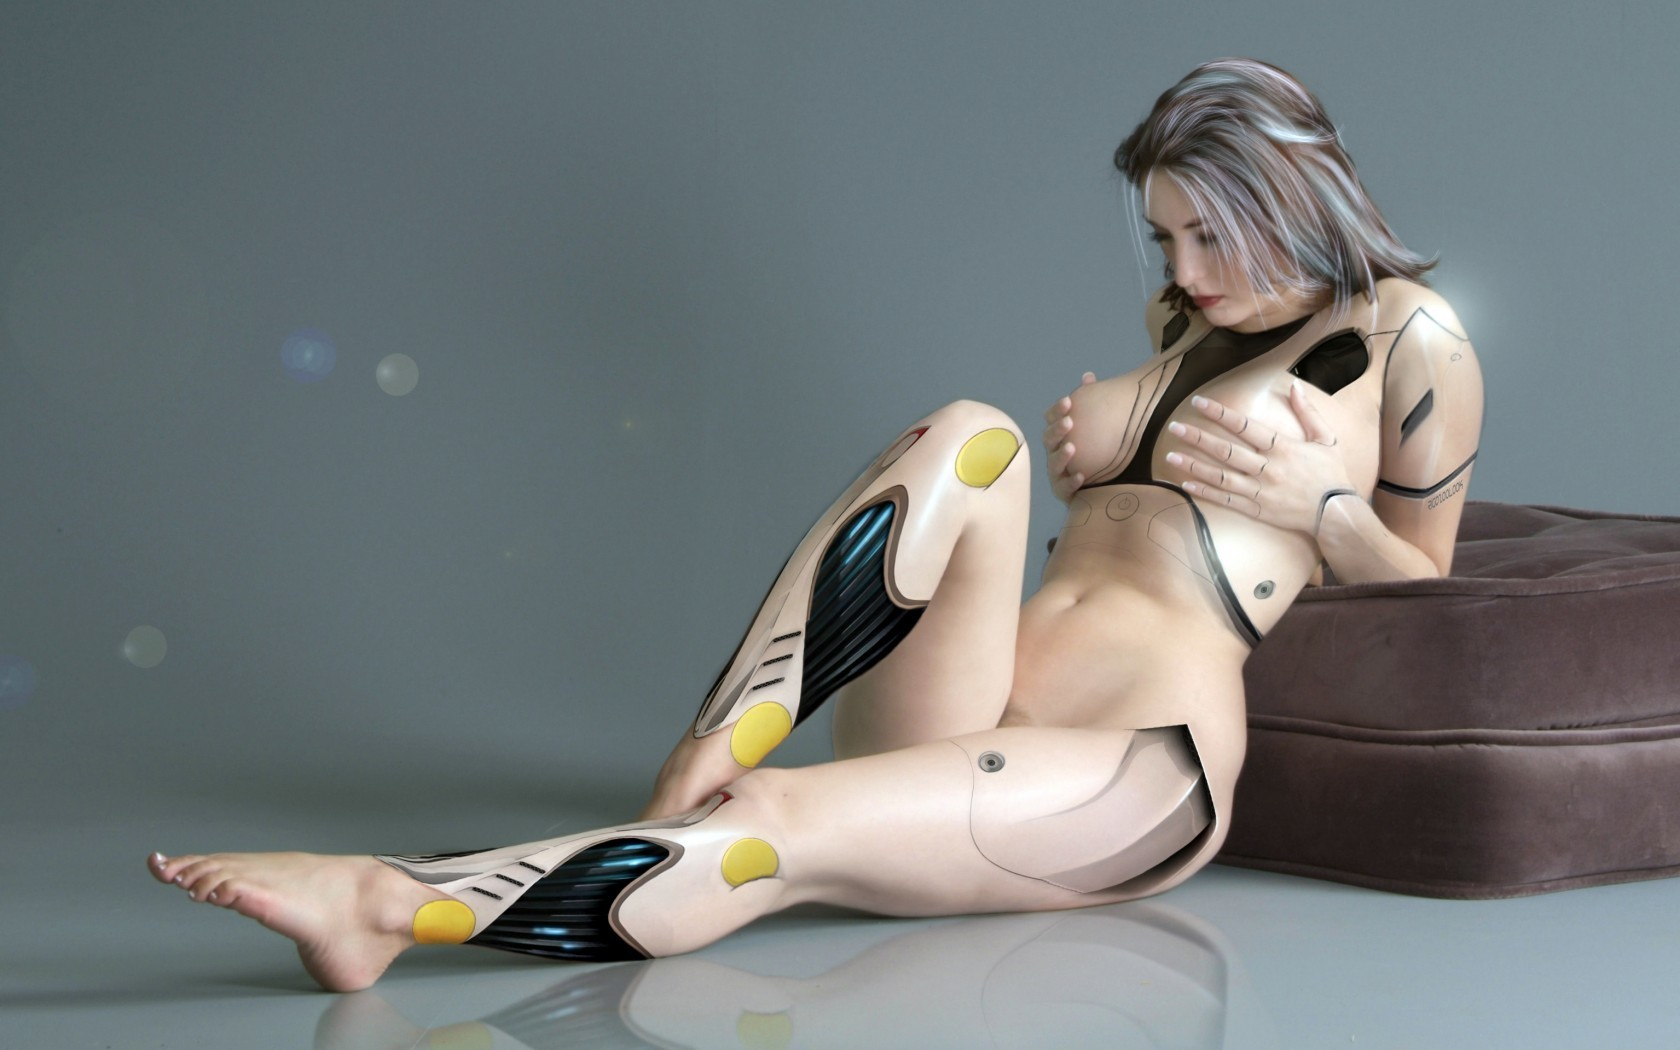 Honey naked cyber women — photo 12